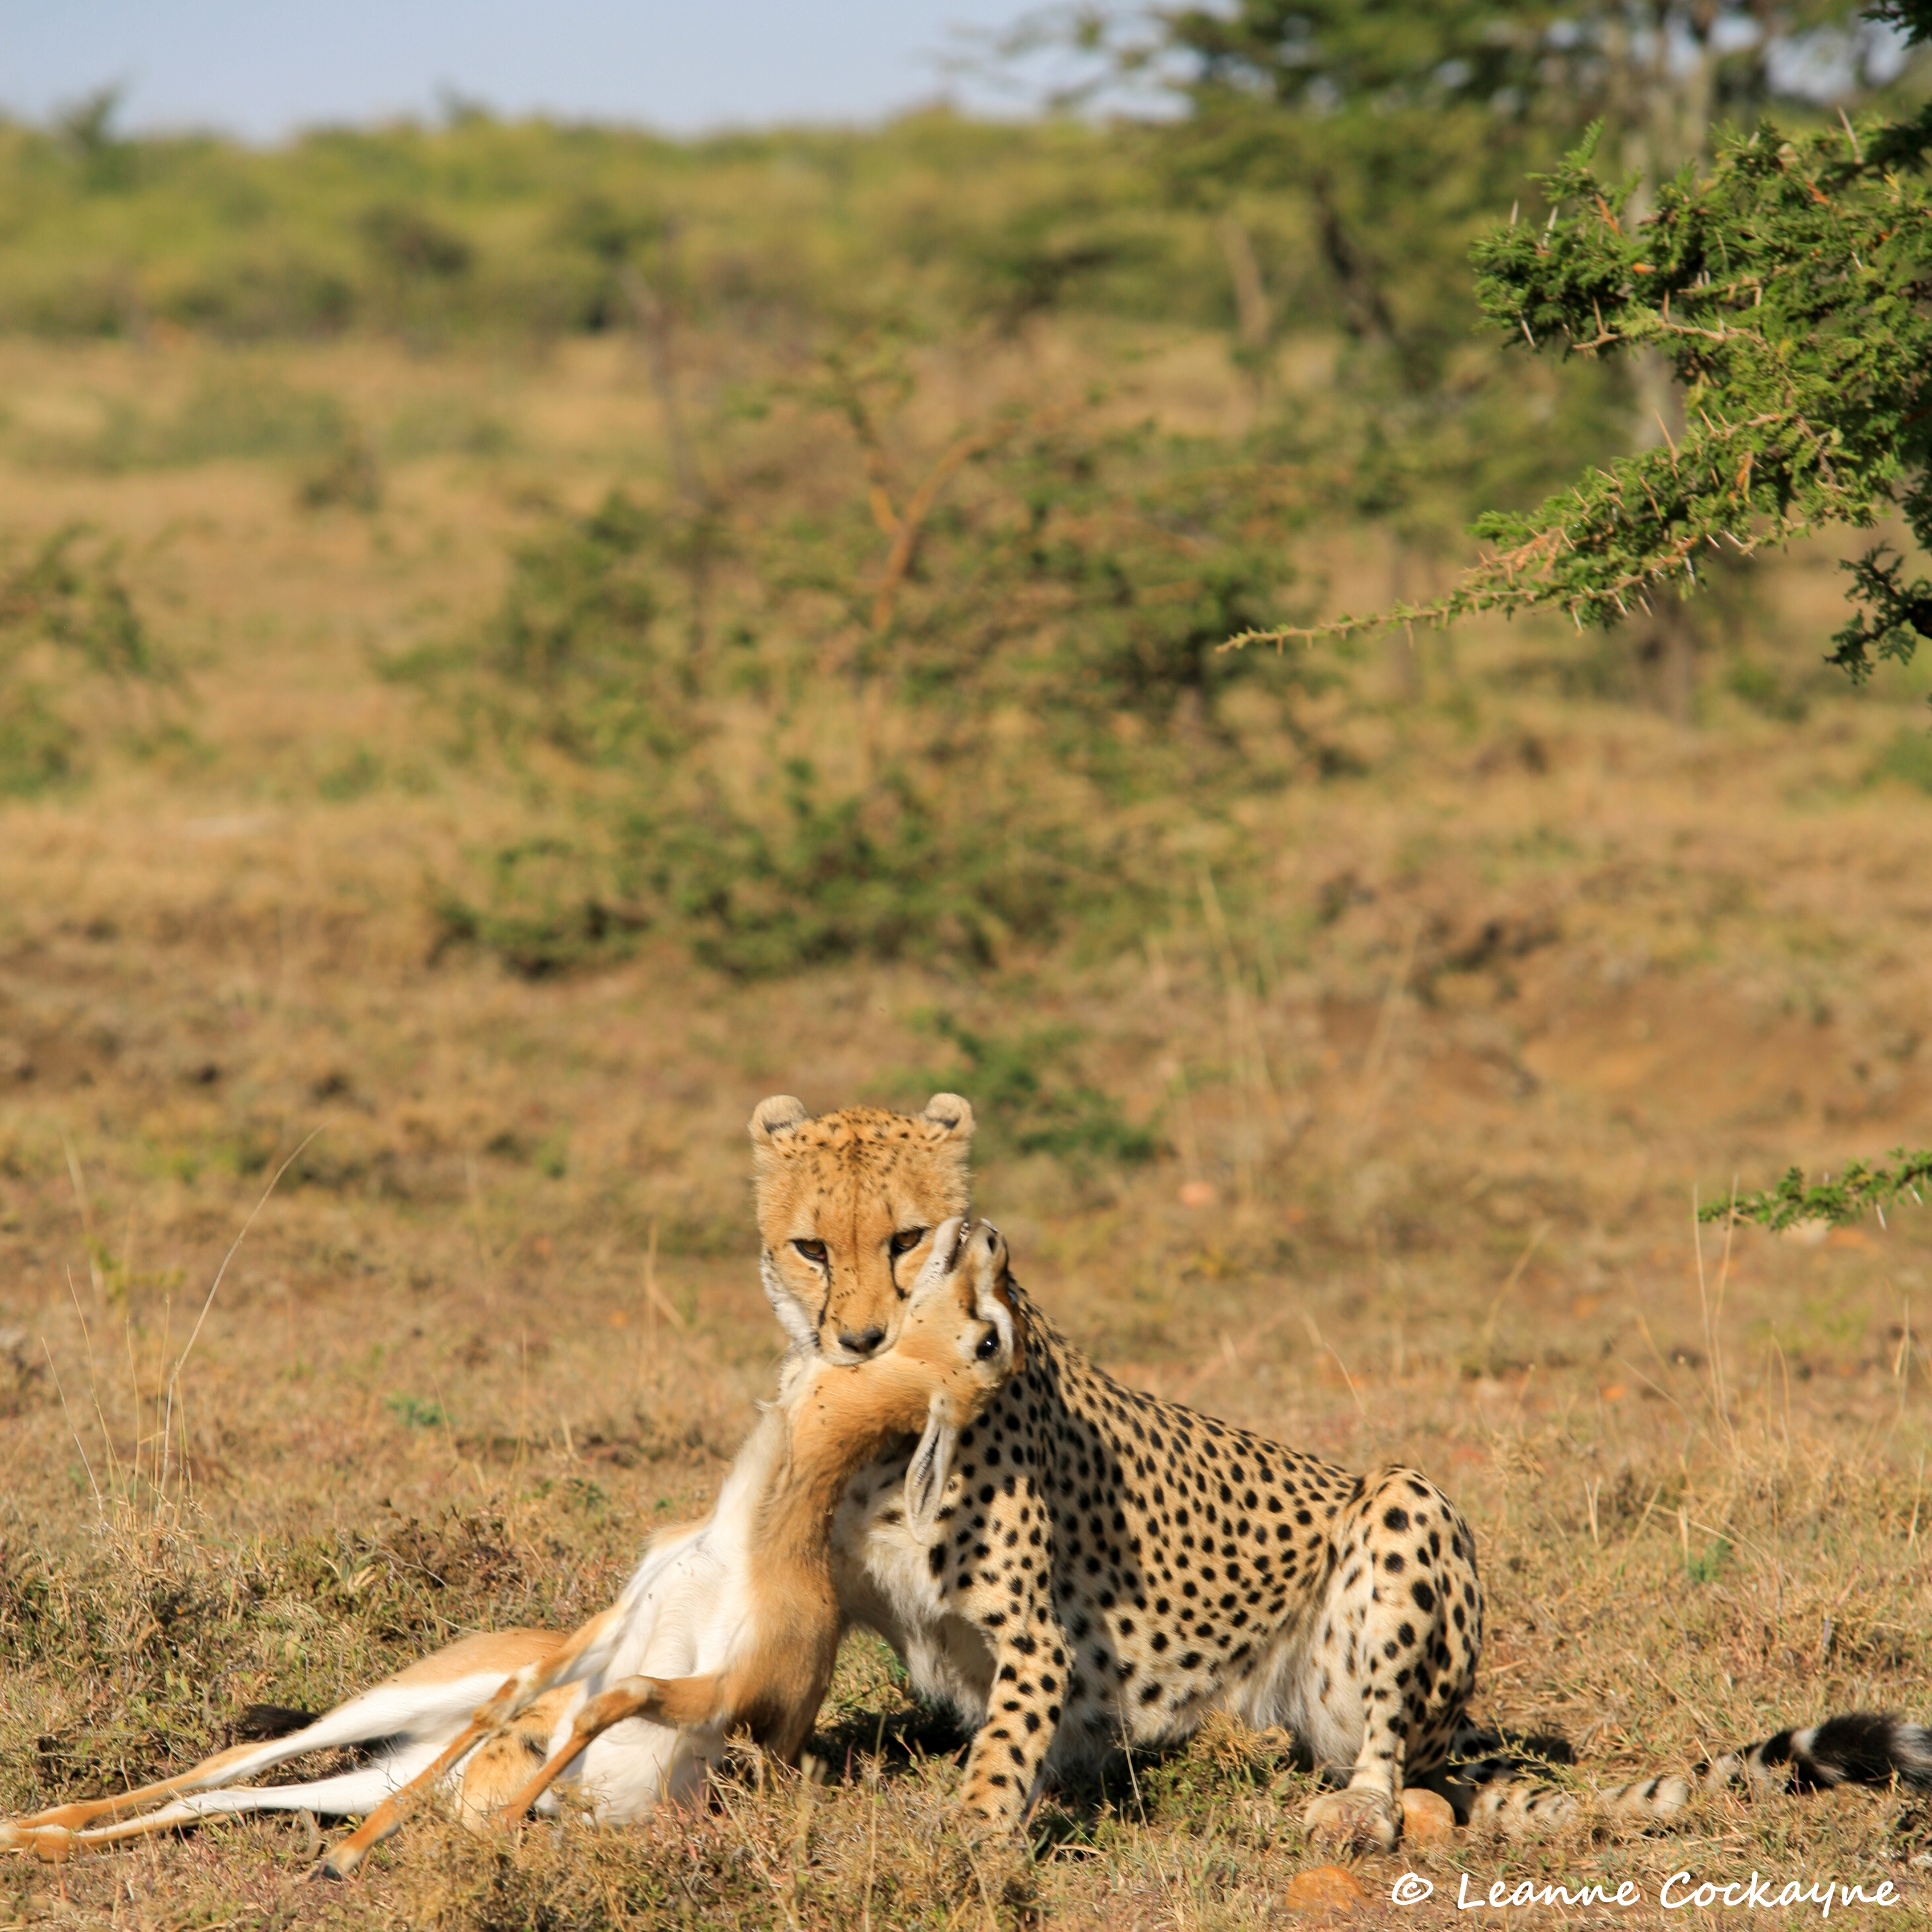 Kiraposh 's Cheetah daughter with gazelle kill